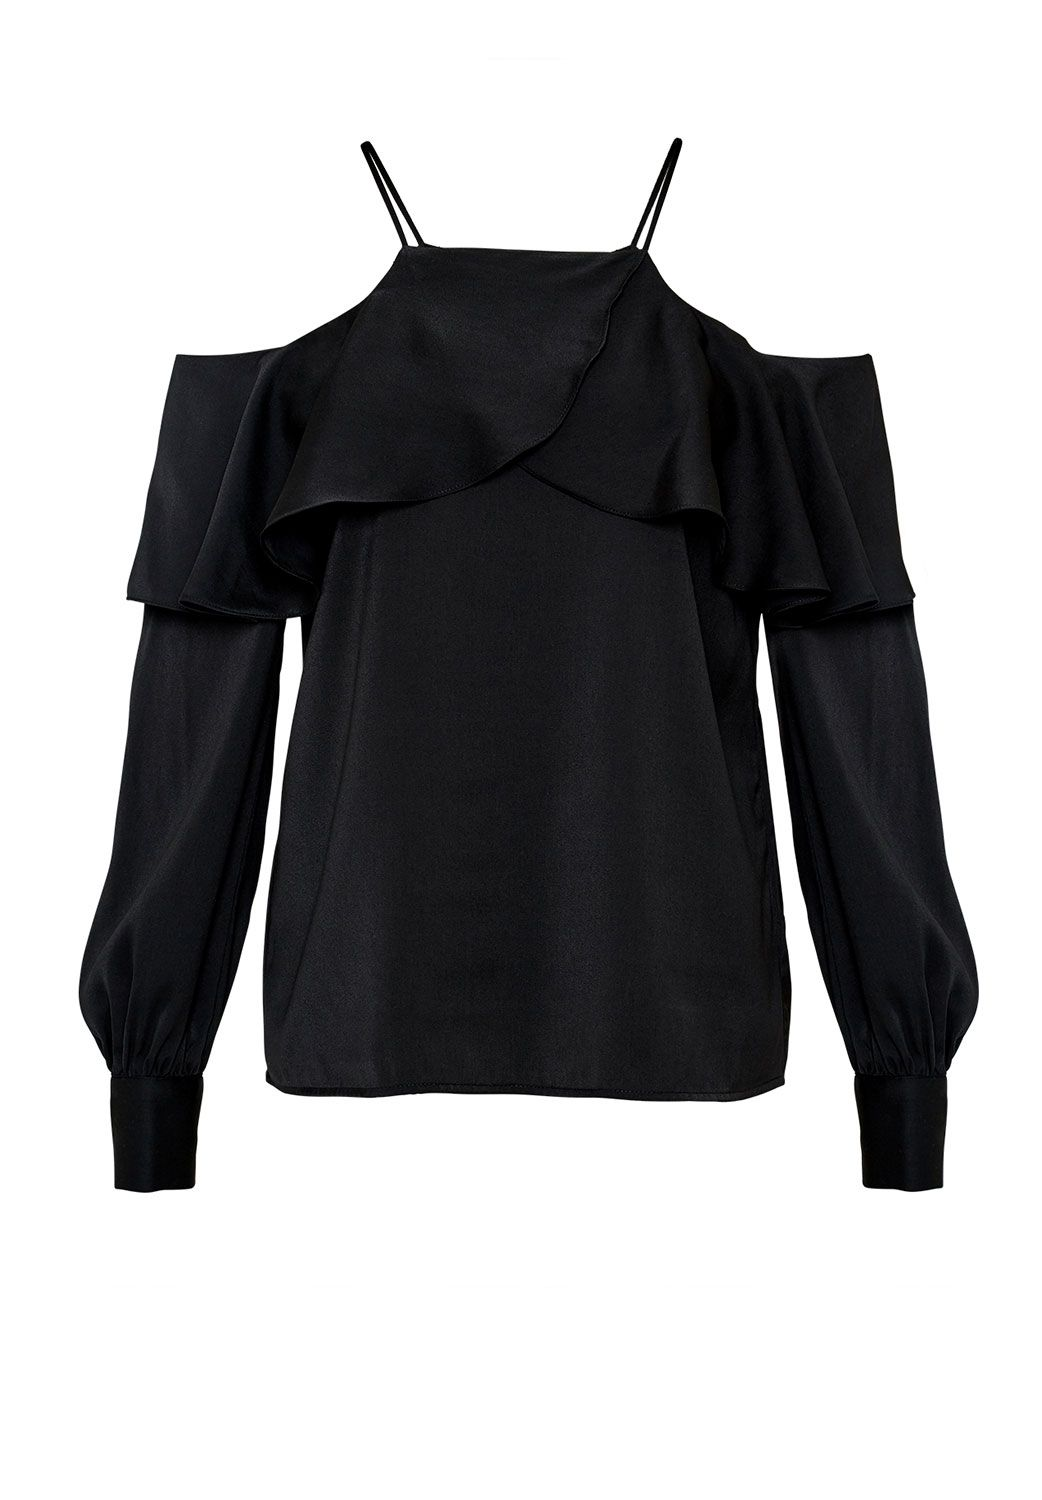 Hallhuber Flounced off-the-shoulder blouse, Black